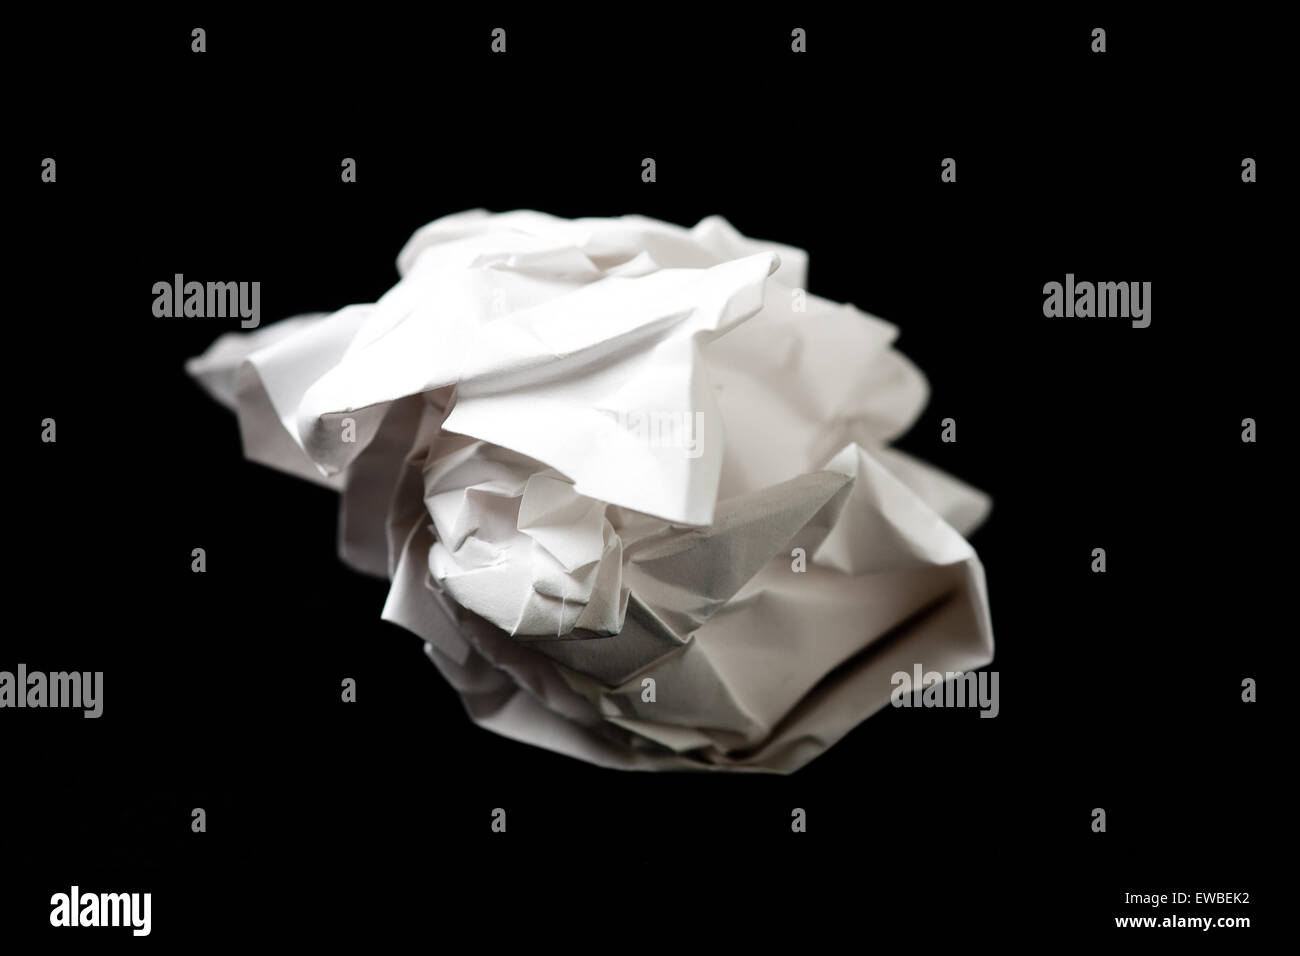 screwed up ball of paper - Stock Image